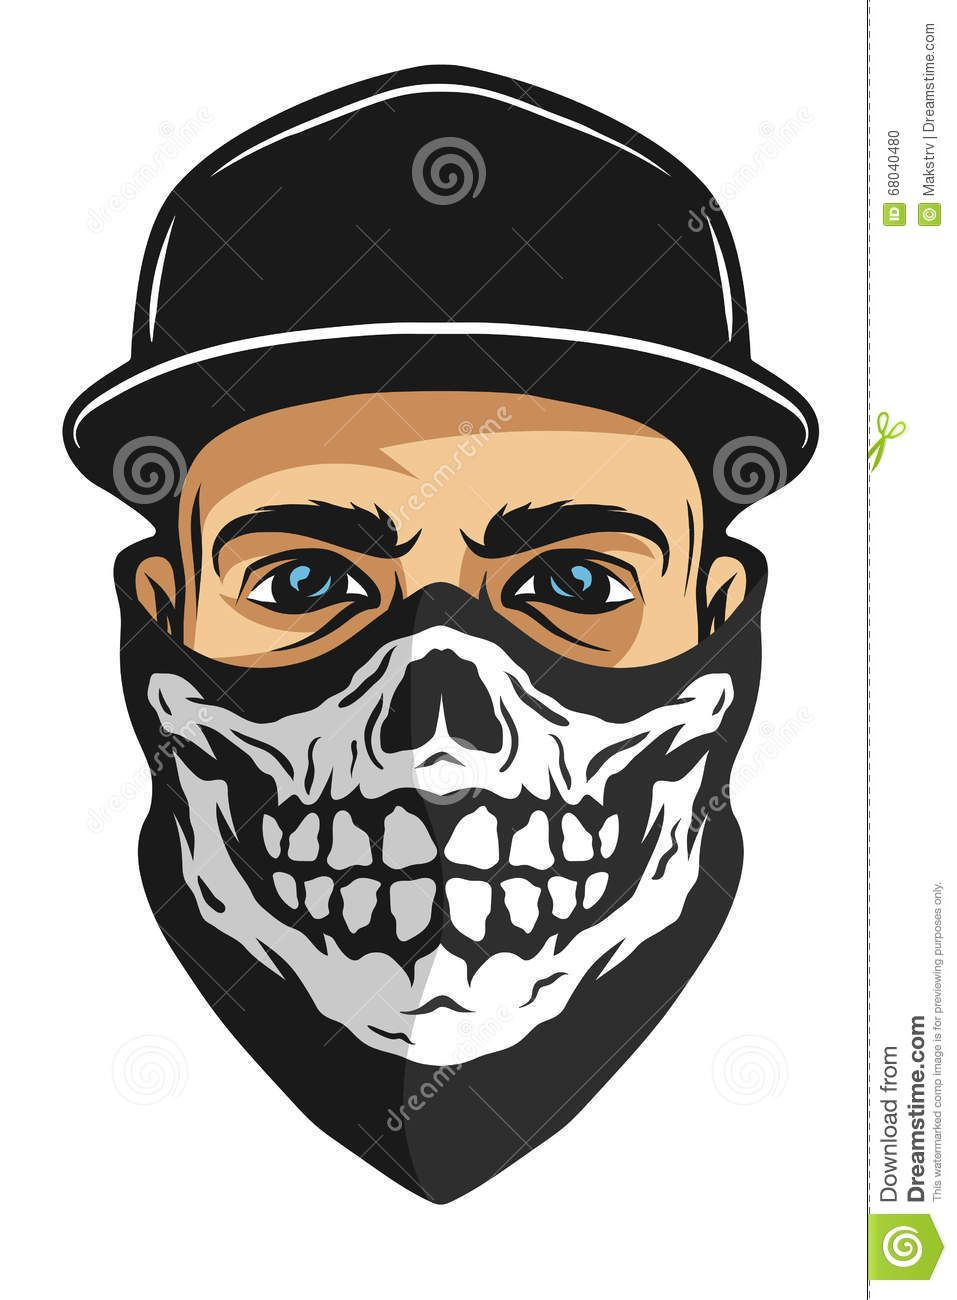 A Guy In A Bandana With A Skull Pattern. Stock Vector - Image: 68040480